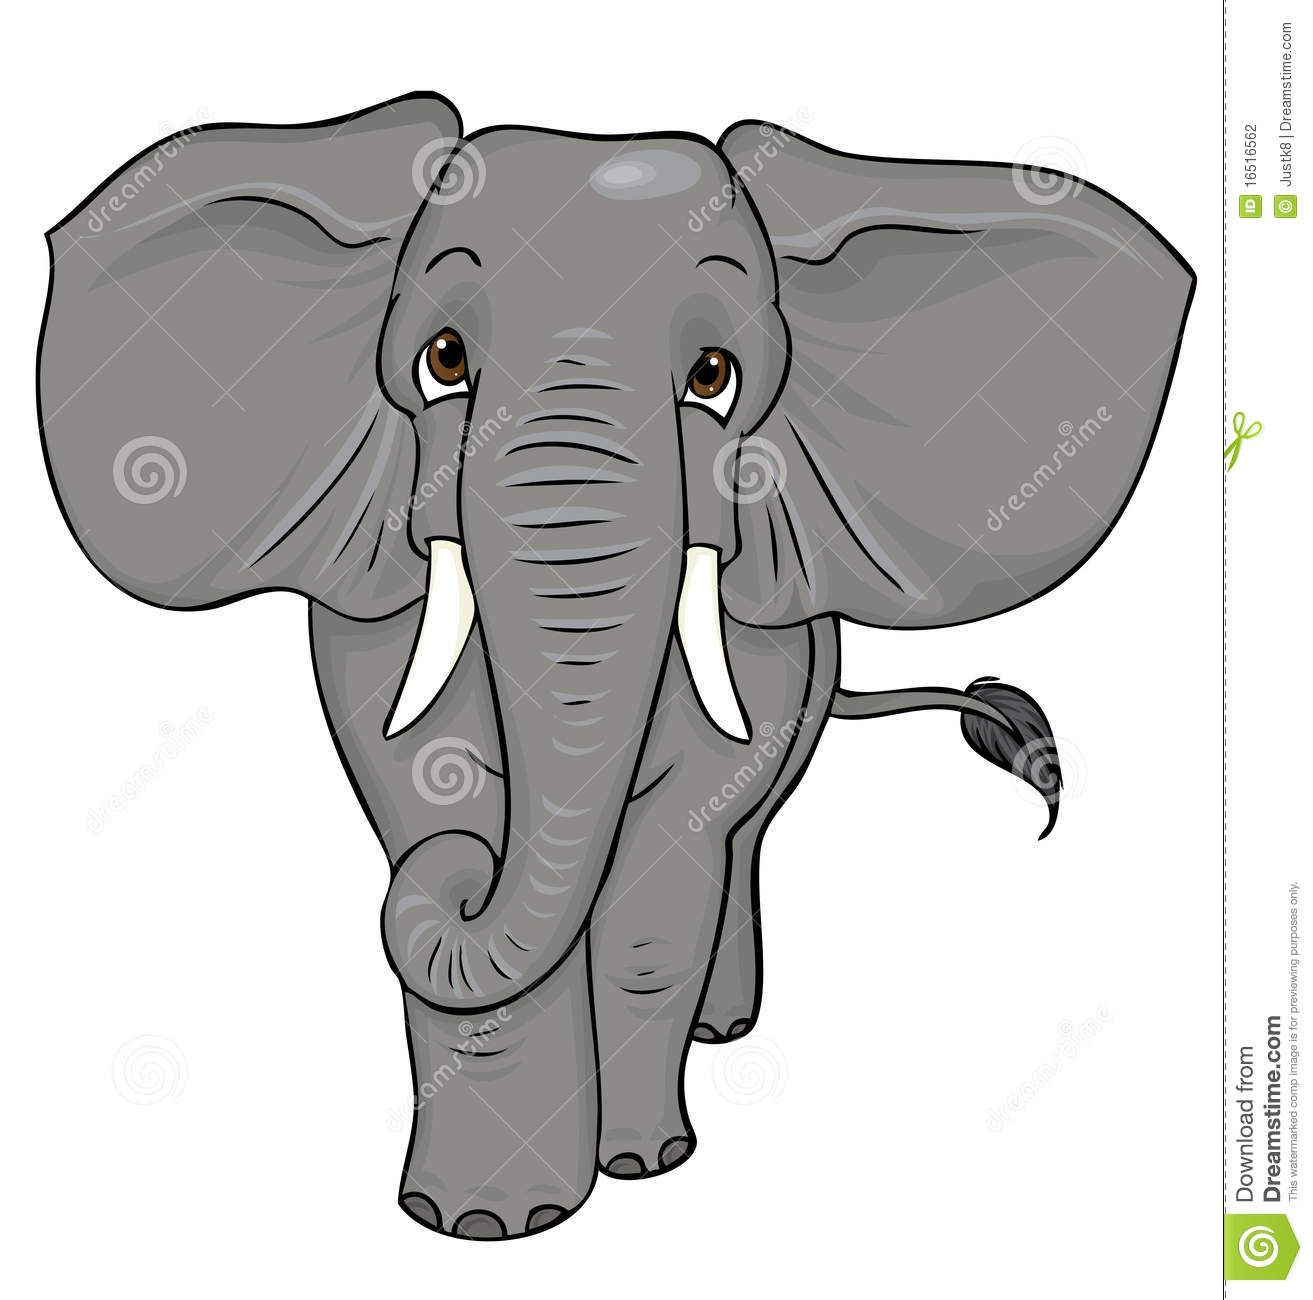 Cartoon Elephant Royalty Free Stock Photography - Image: 12610867 ...